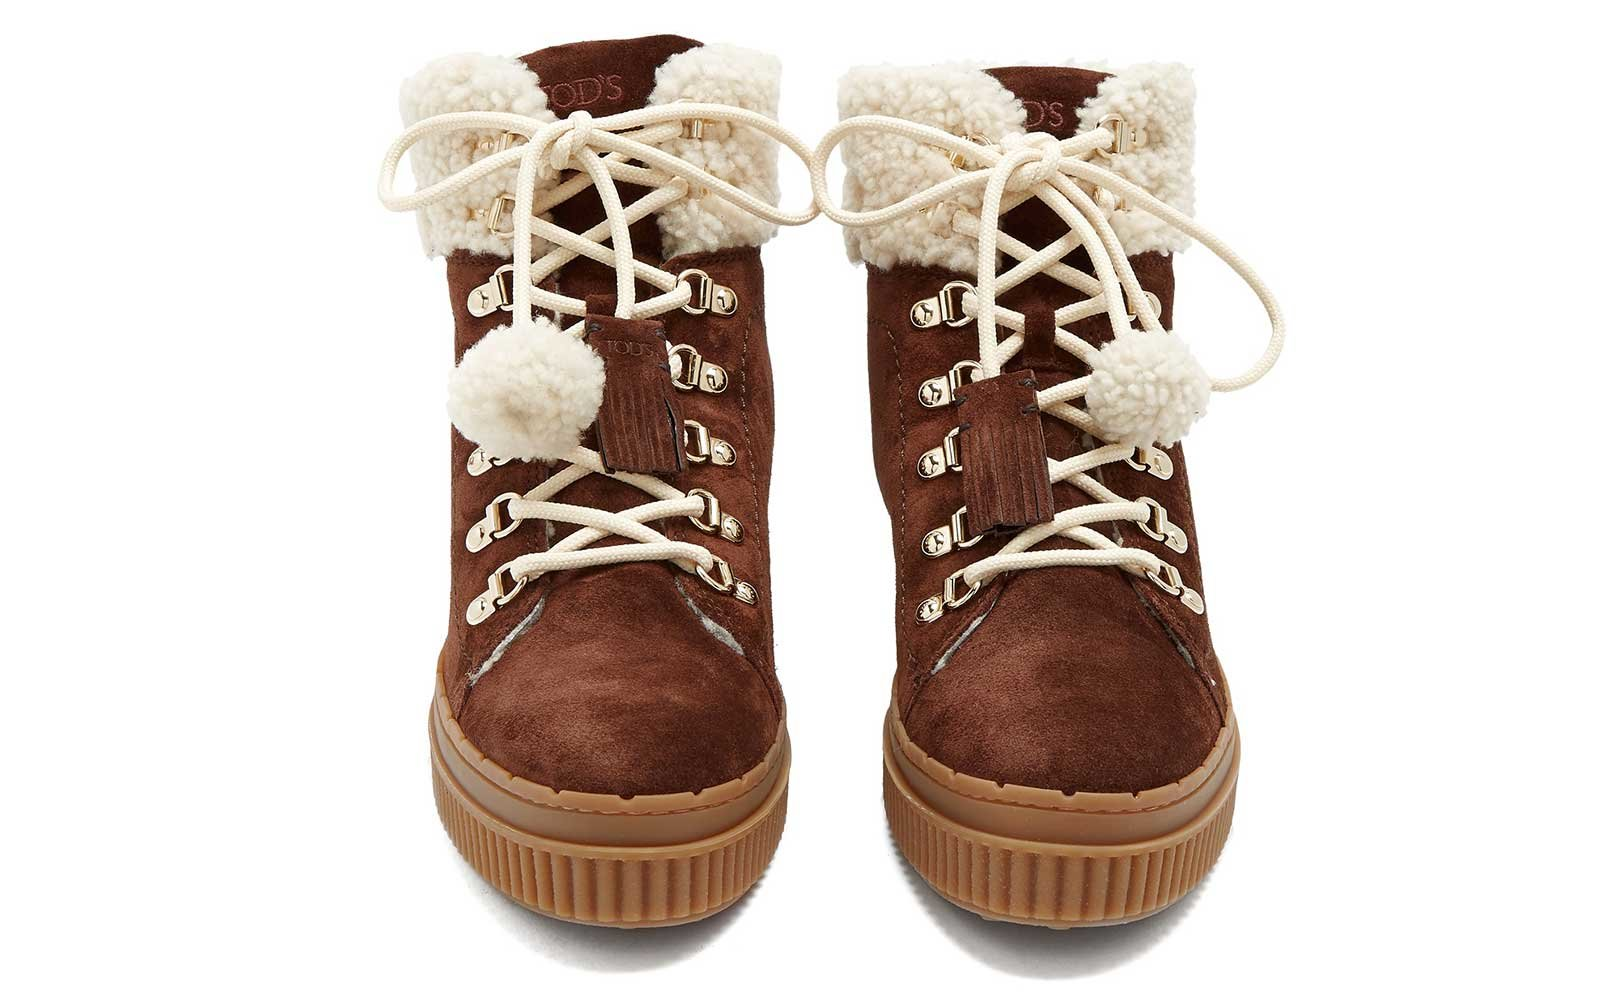 Shearling-lined boots by Tod's